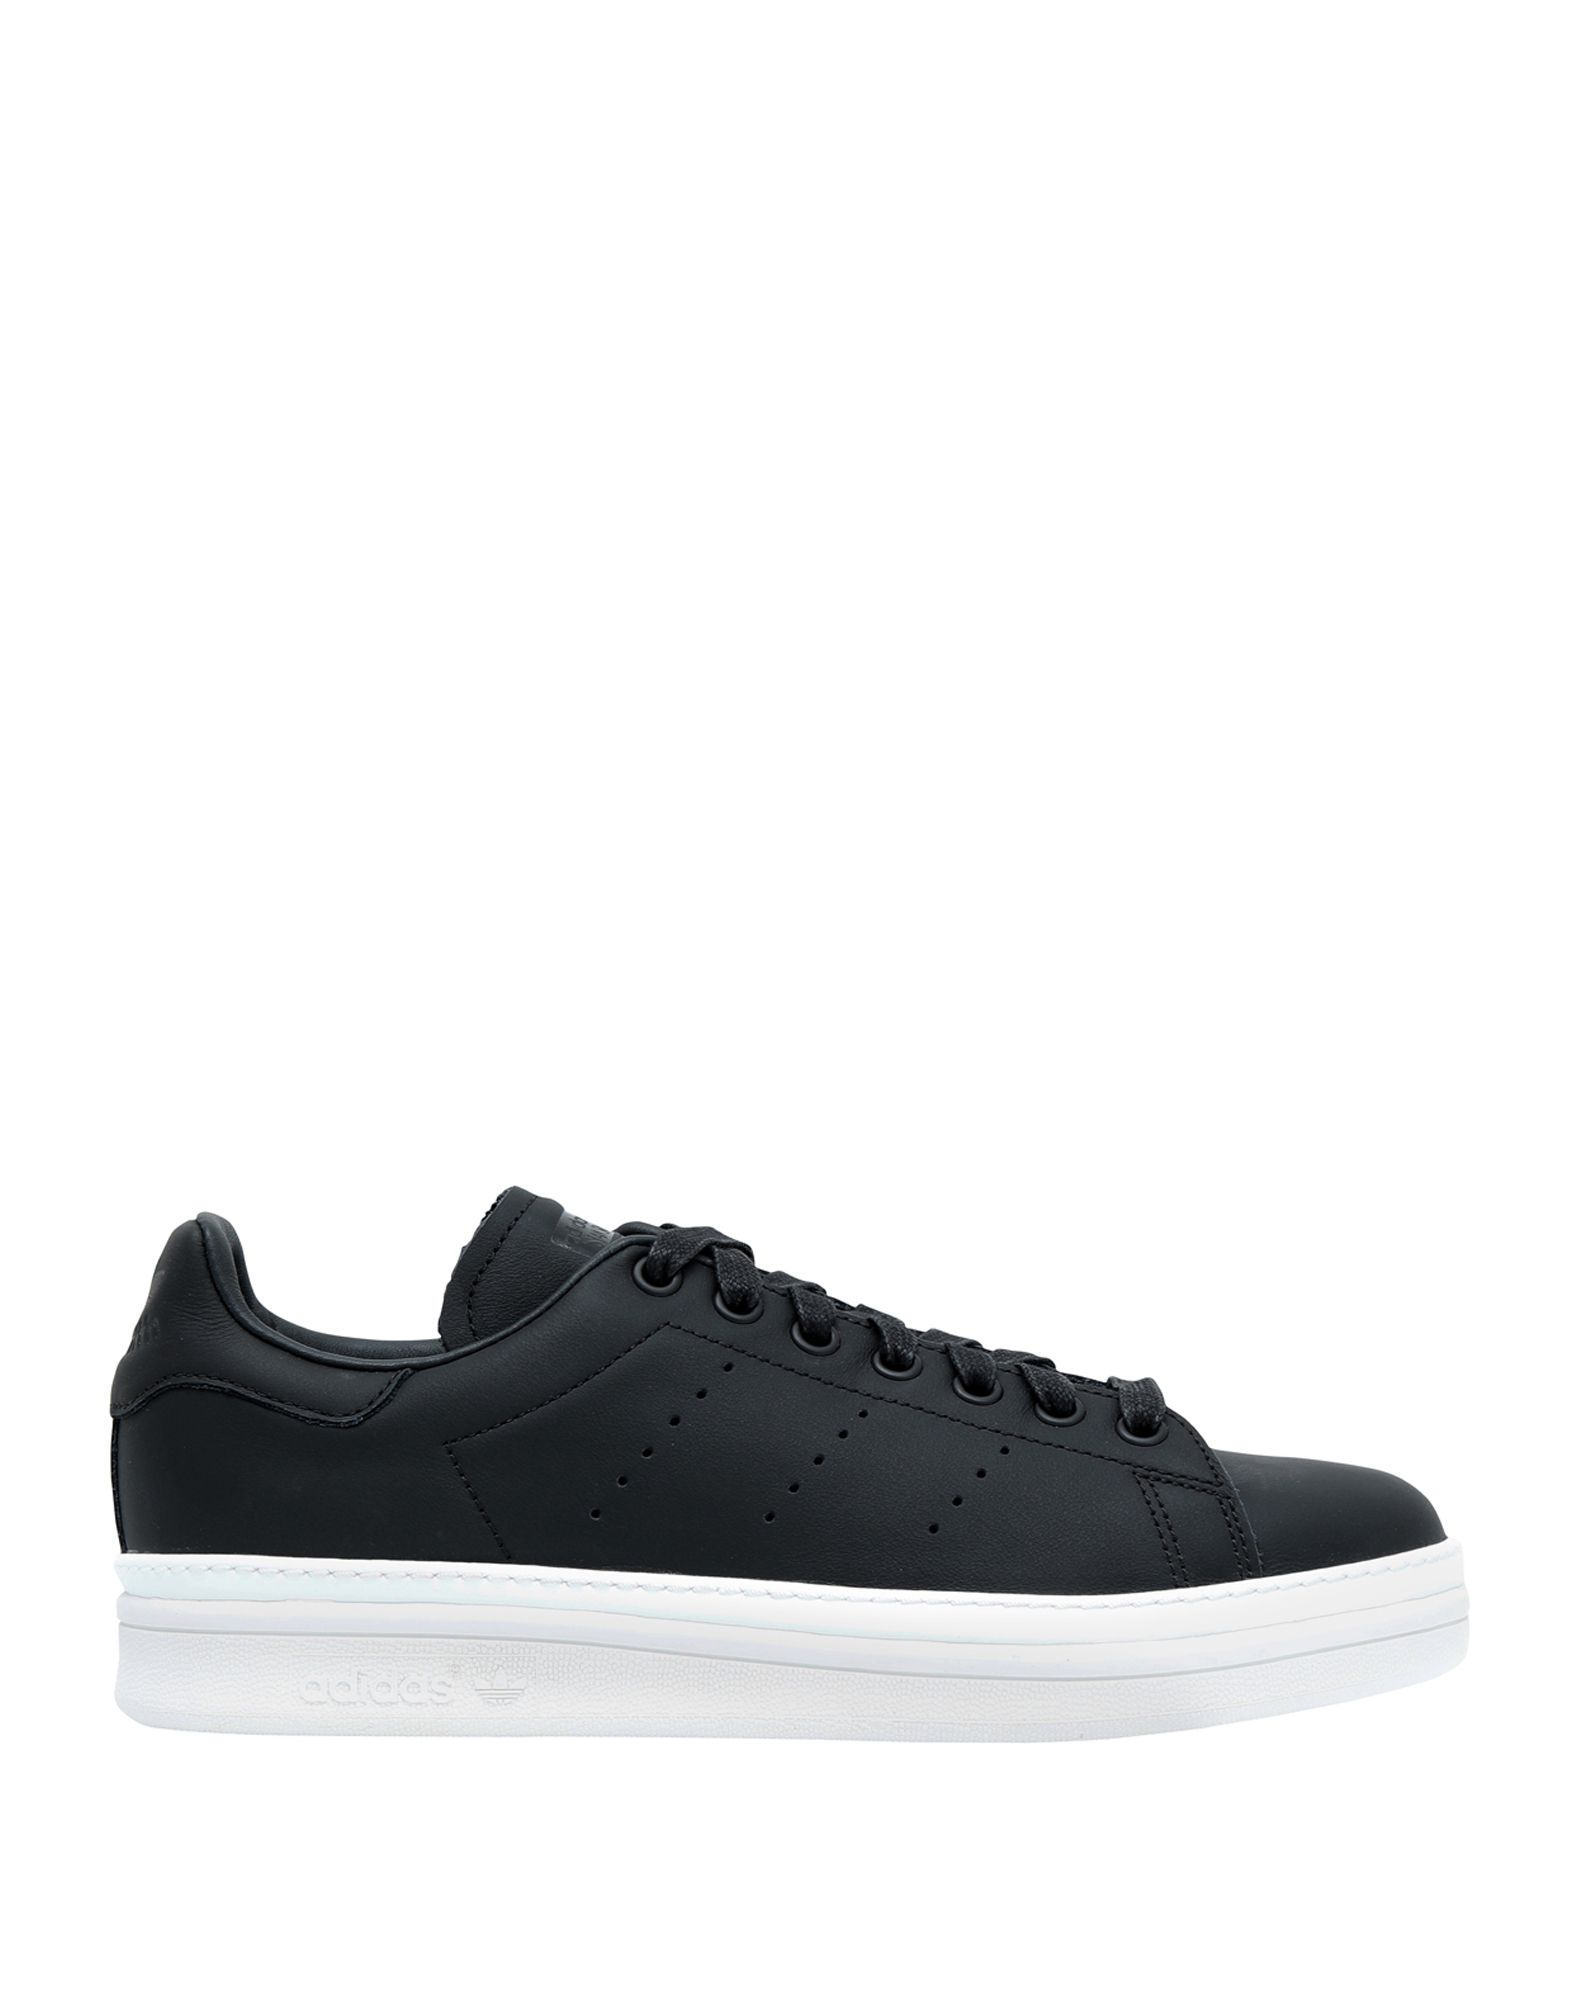 Adidas Originals Stan Smith New Bold - Sneakers - Women on Adidas Originals Sneakers online on Women  United Kingdom - 11565940SF 6fff41